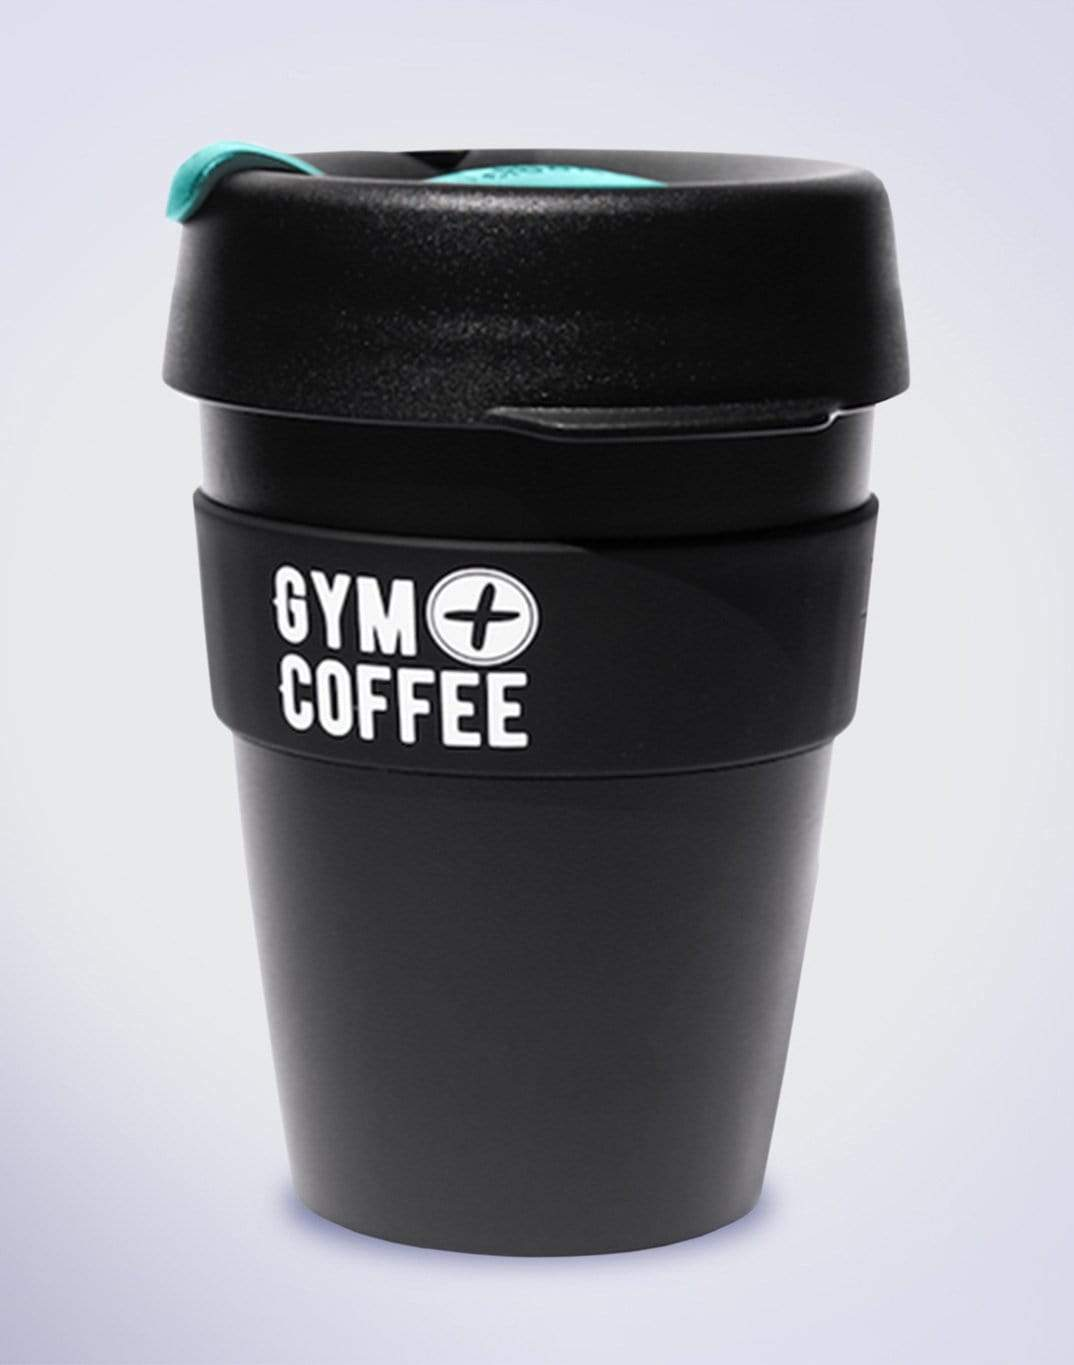 Gym Plus Coffee KeepCup Black/Green KeepCup Medium Designed in Ireland